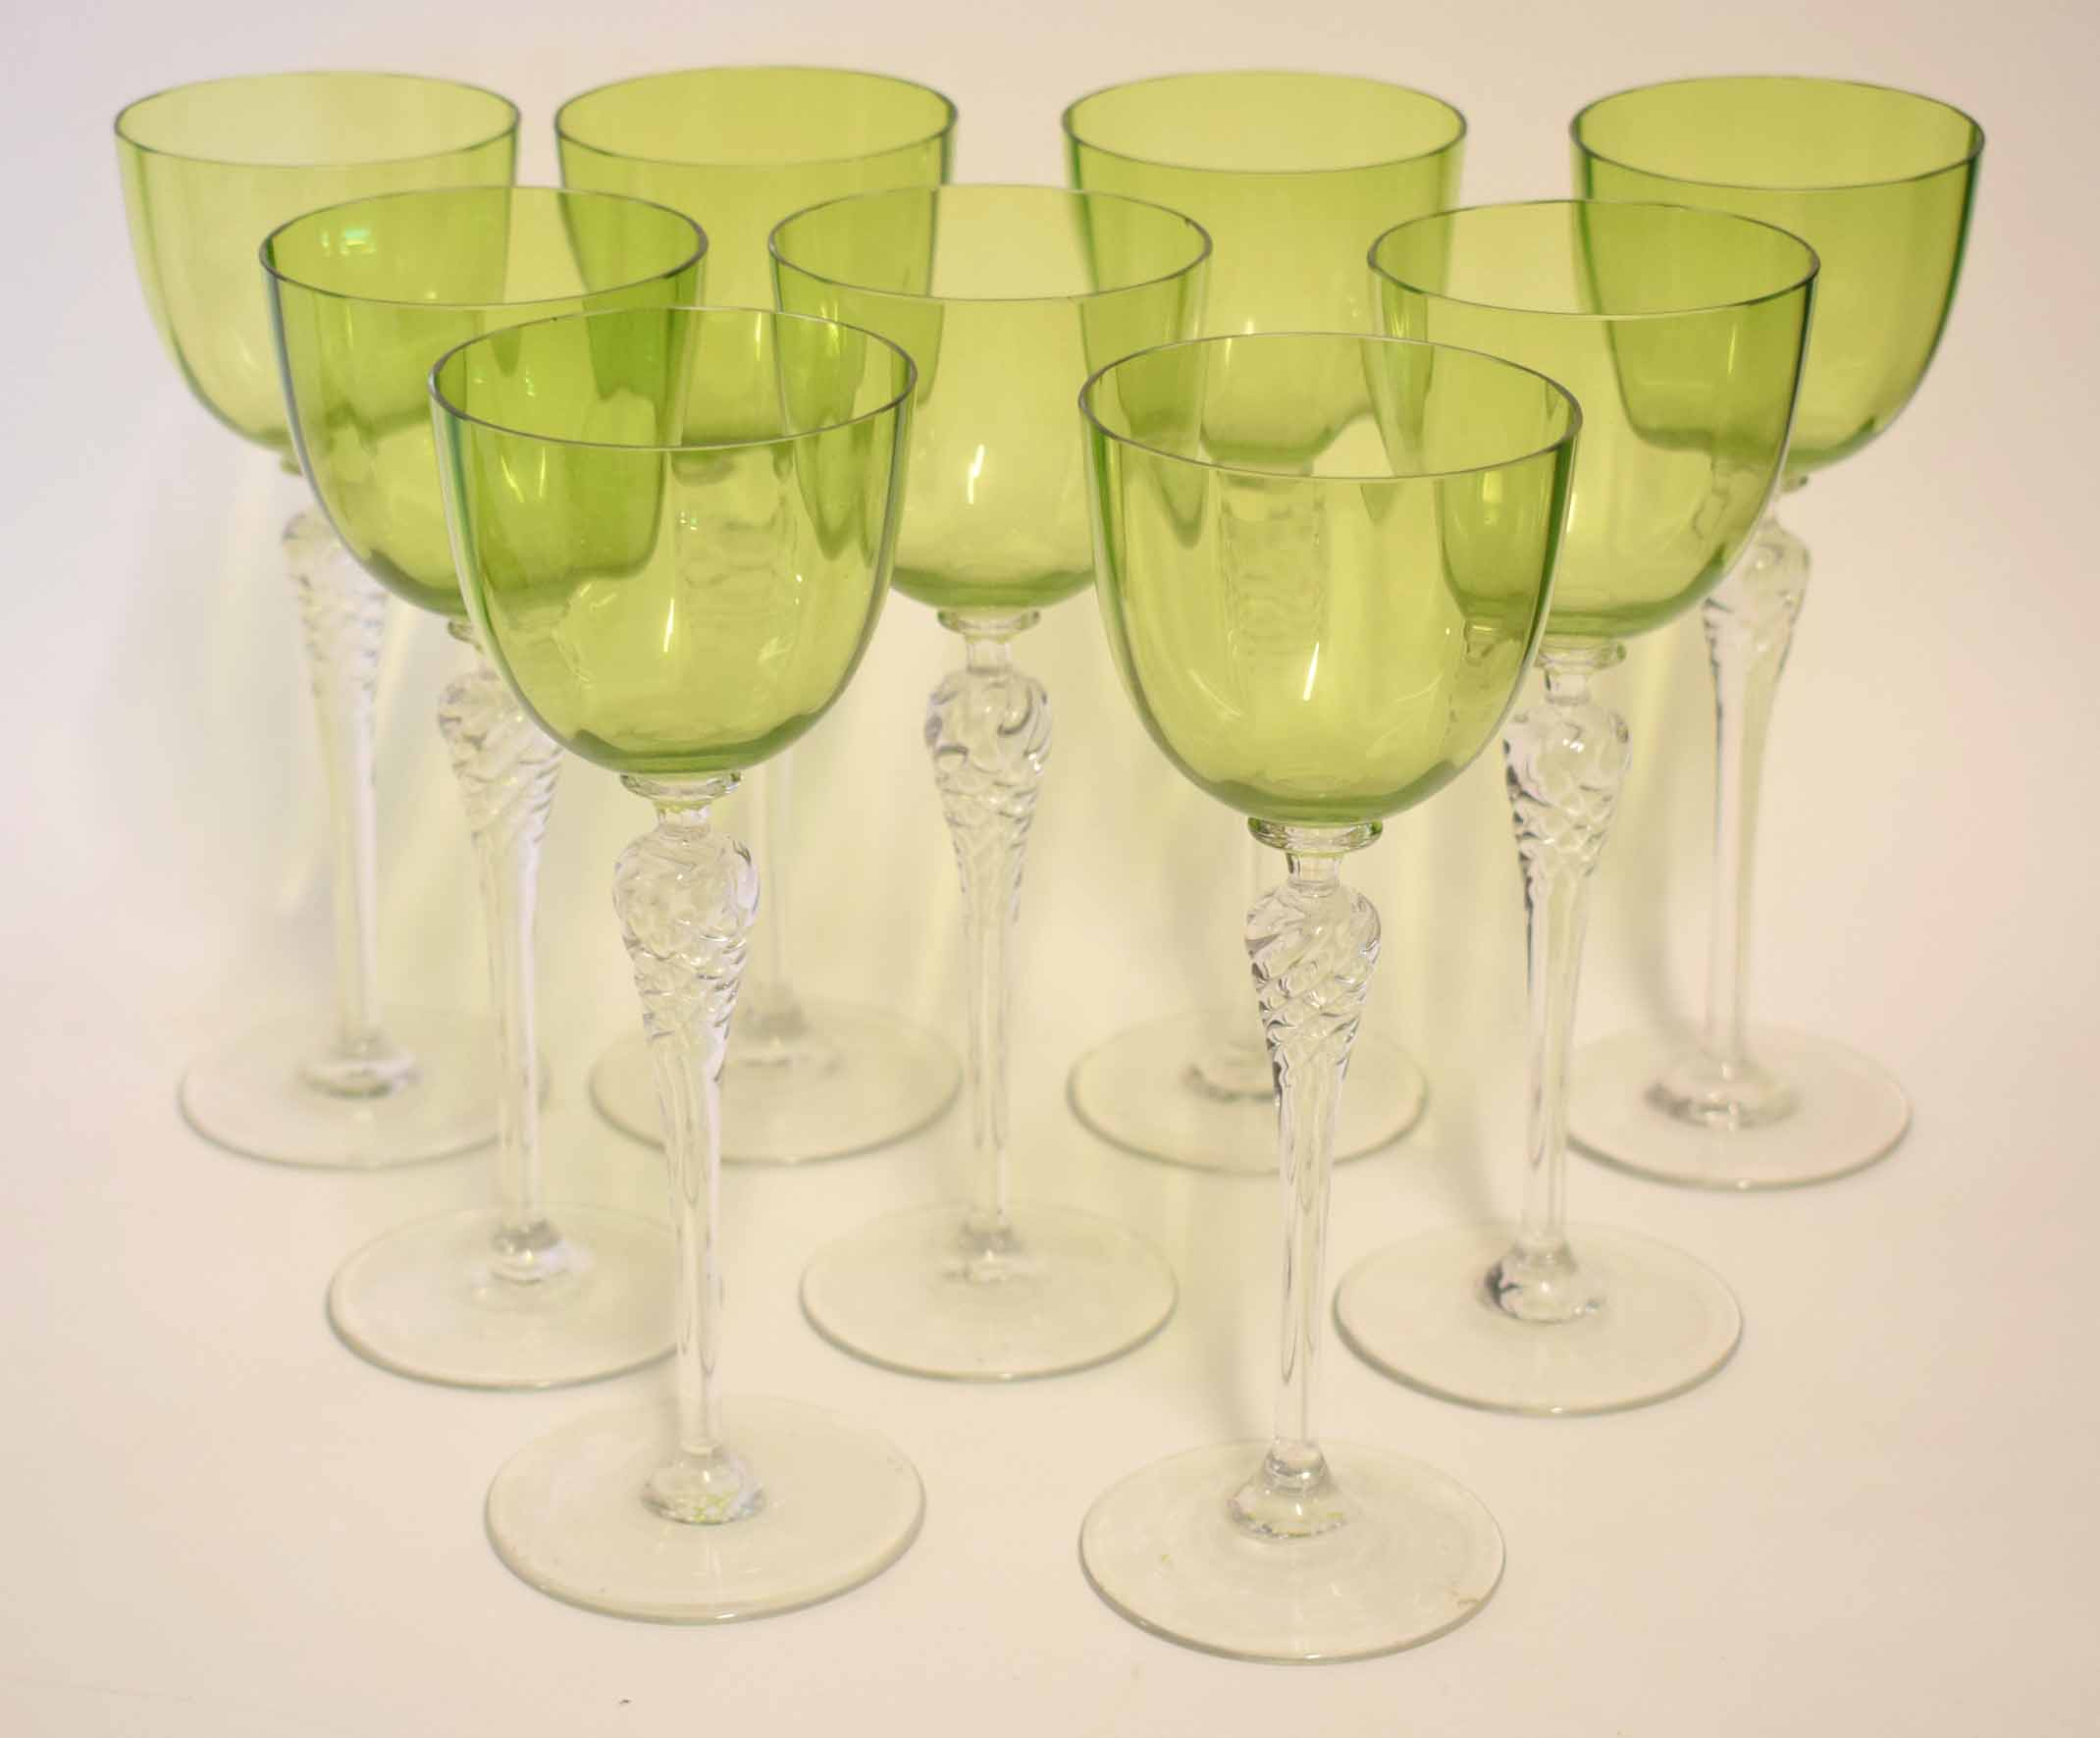 Lot 85 - Group of nine wine glasses on tall stems, the bucket shaped bowls with a light green colour, each